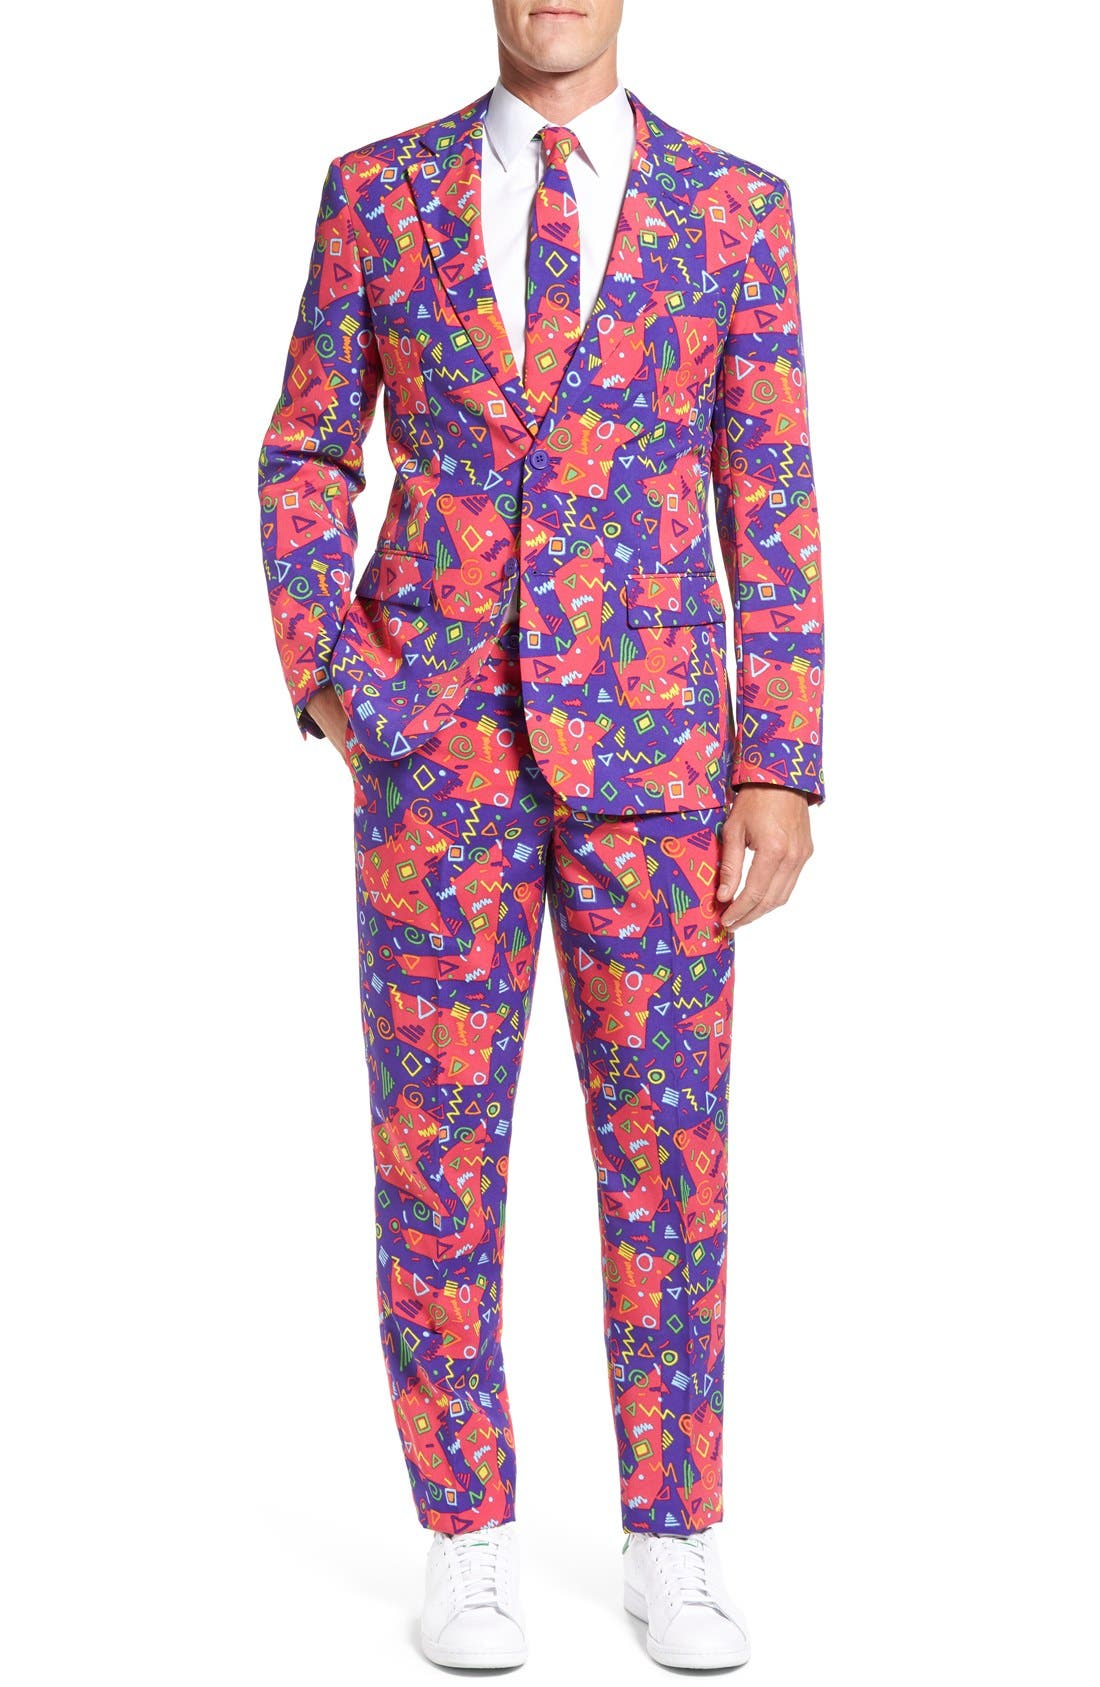 'The Fresh Prince' Trim Fit Two-Piece Suit with Tie,                         Main,                         color, Purple